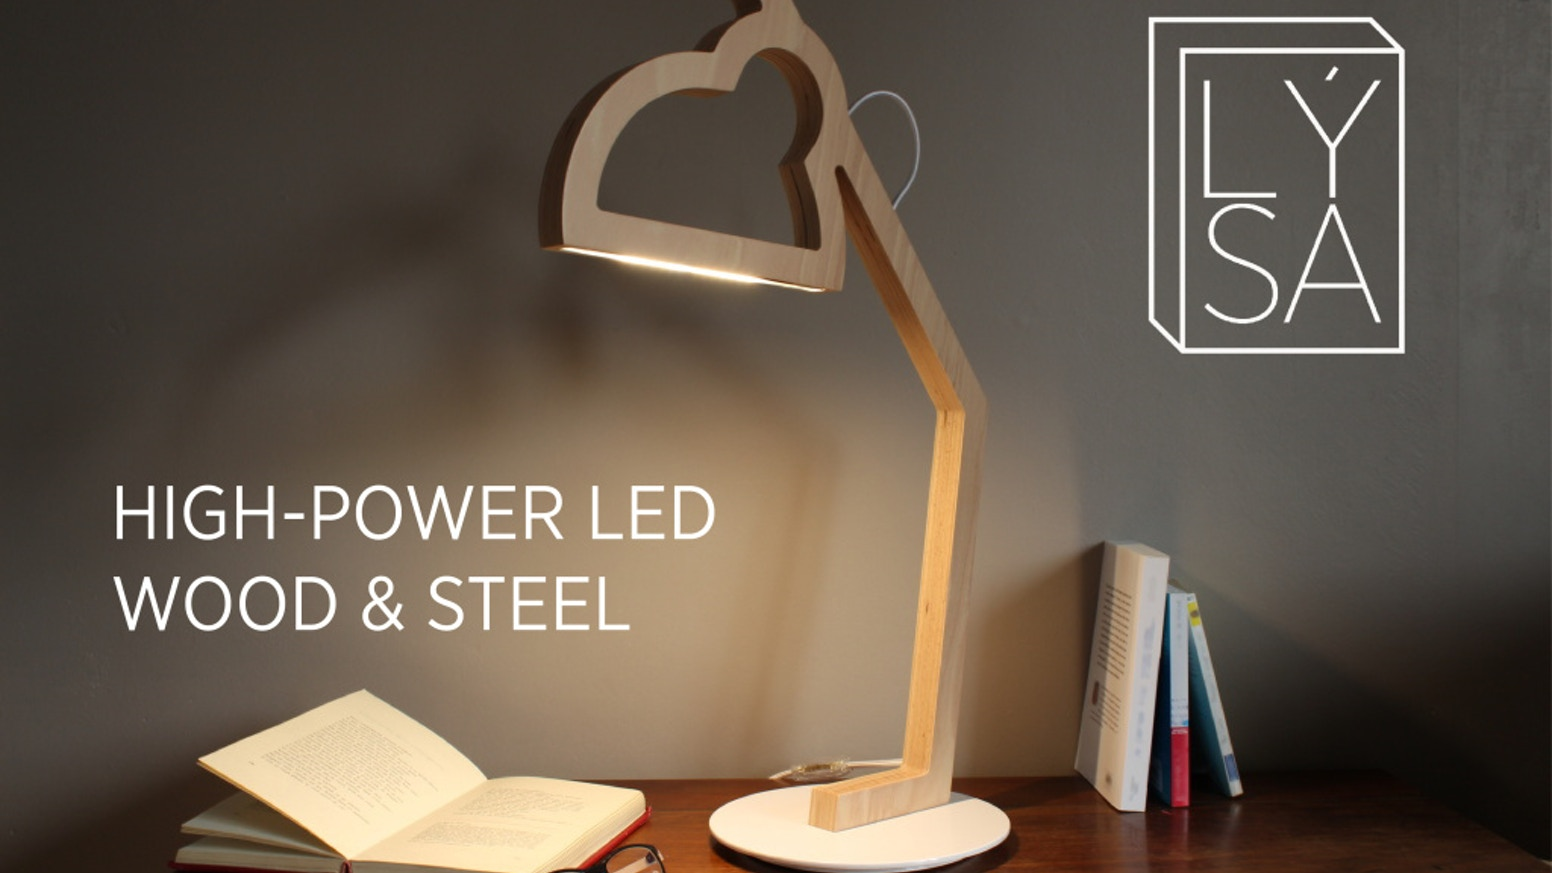 LÝSA lamp is a stunning design for your home. Play and vary its moods for your comfort.